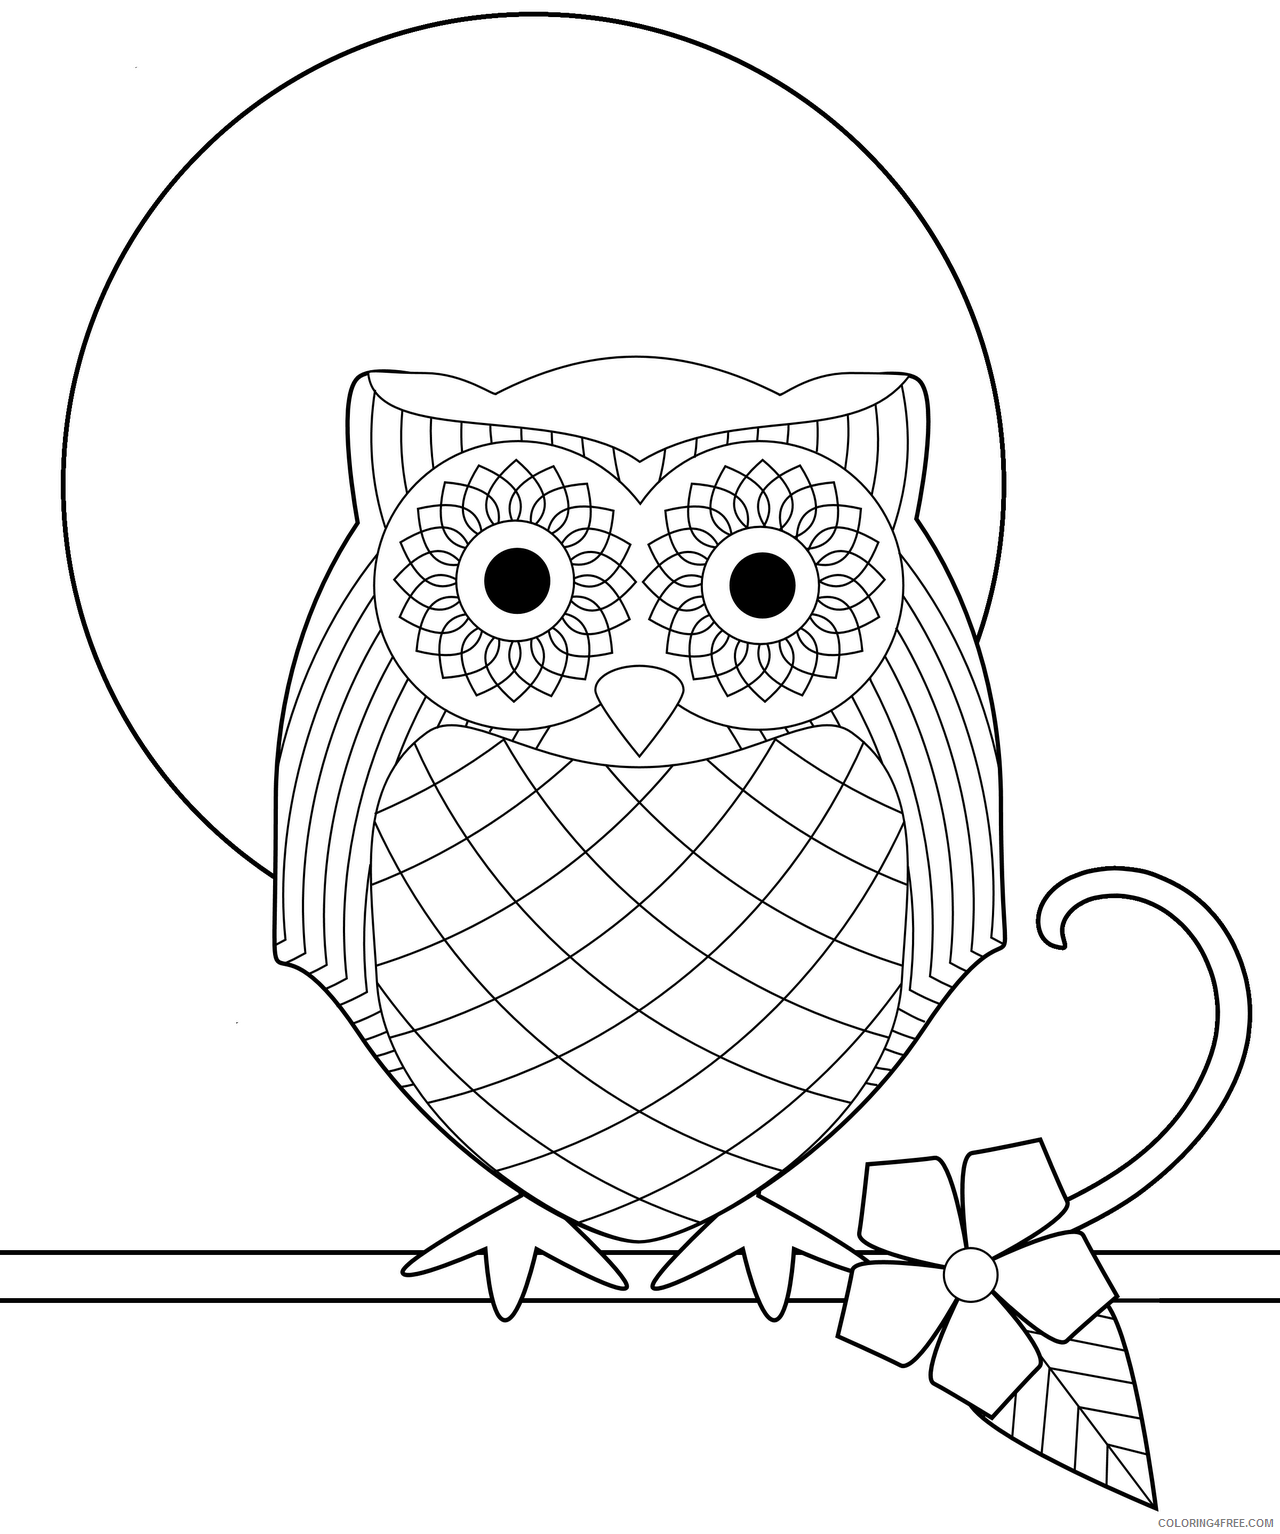 Owl Coloring Sheets Animal Coloring Pages Printable 2021 3020 Coloring4free